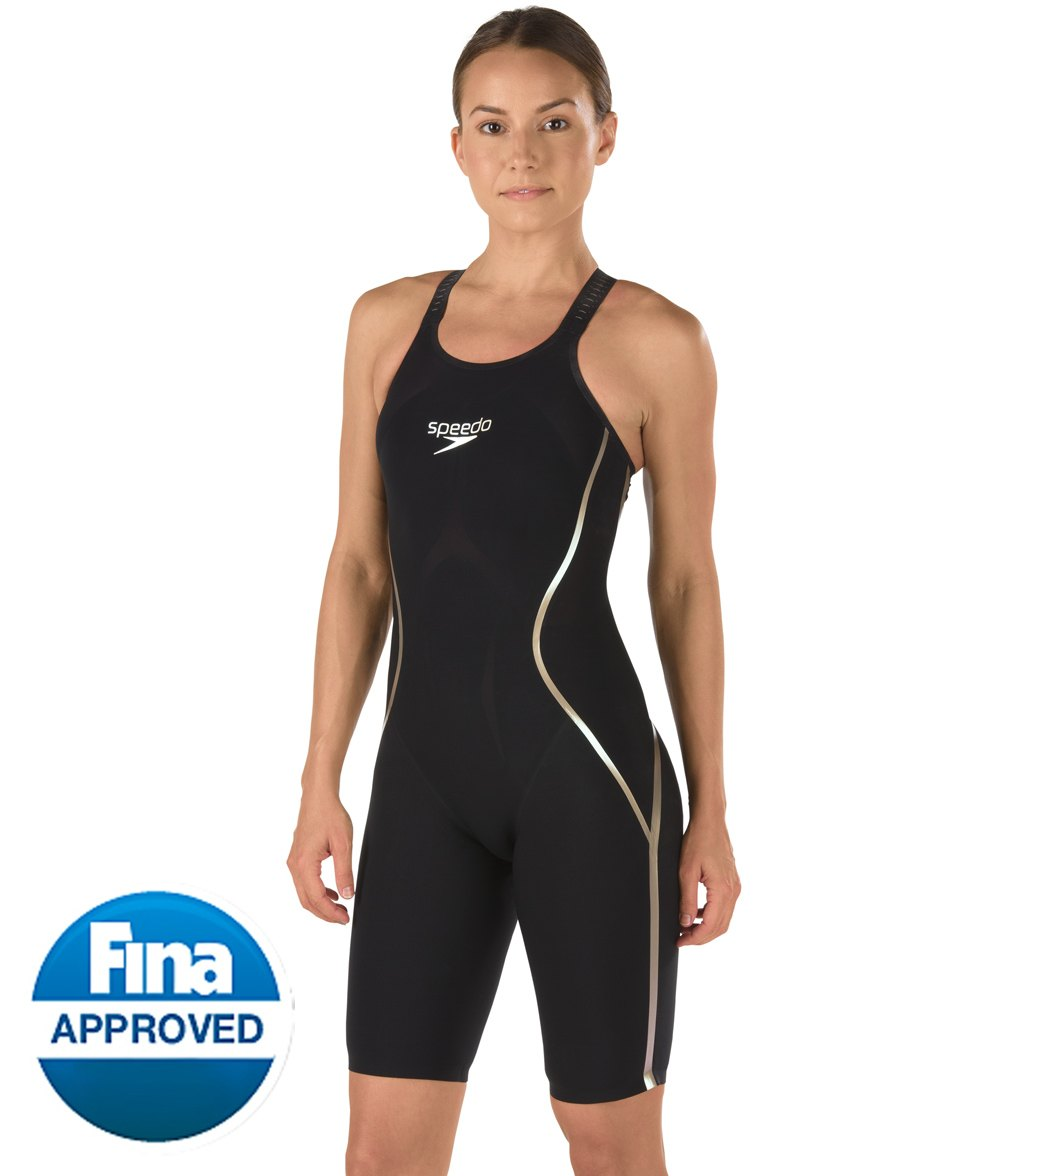 7c55711731 Speedo Limited Edition Women's Black and Gold LZR Racer X Open ...